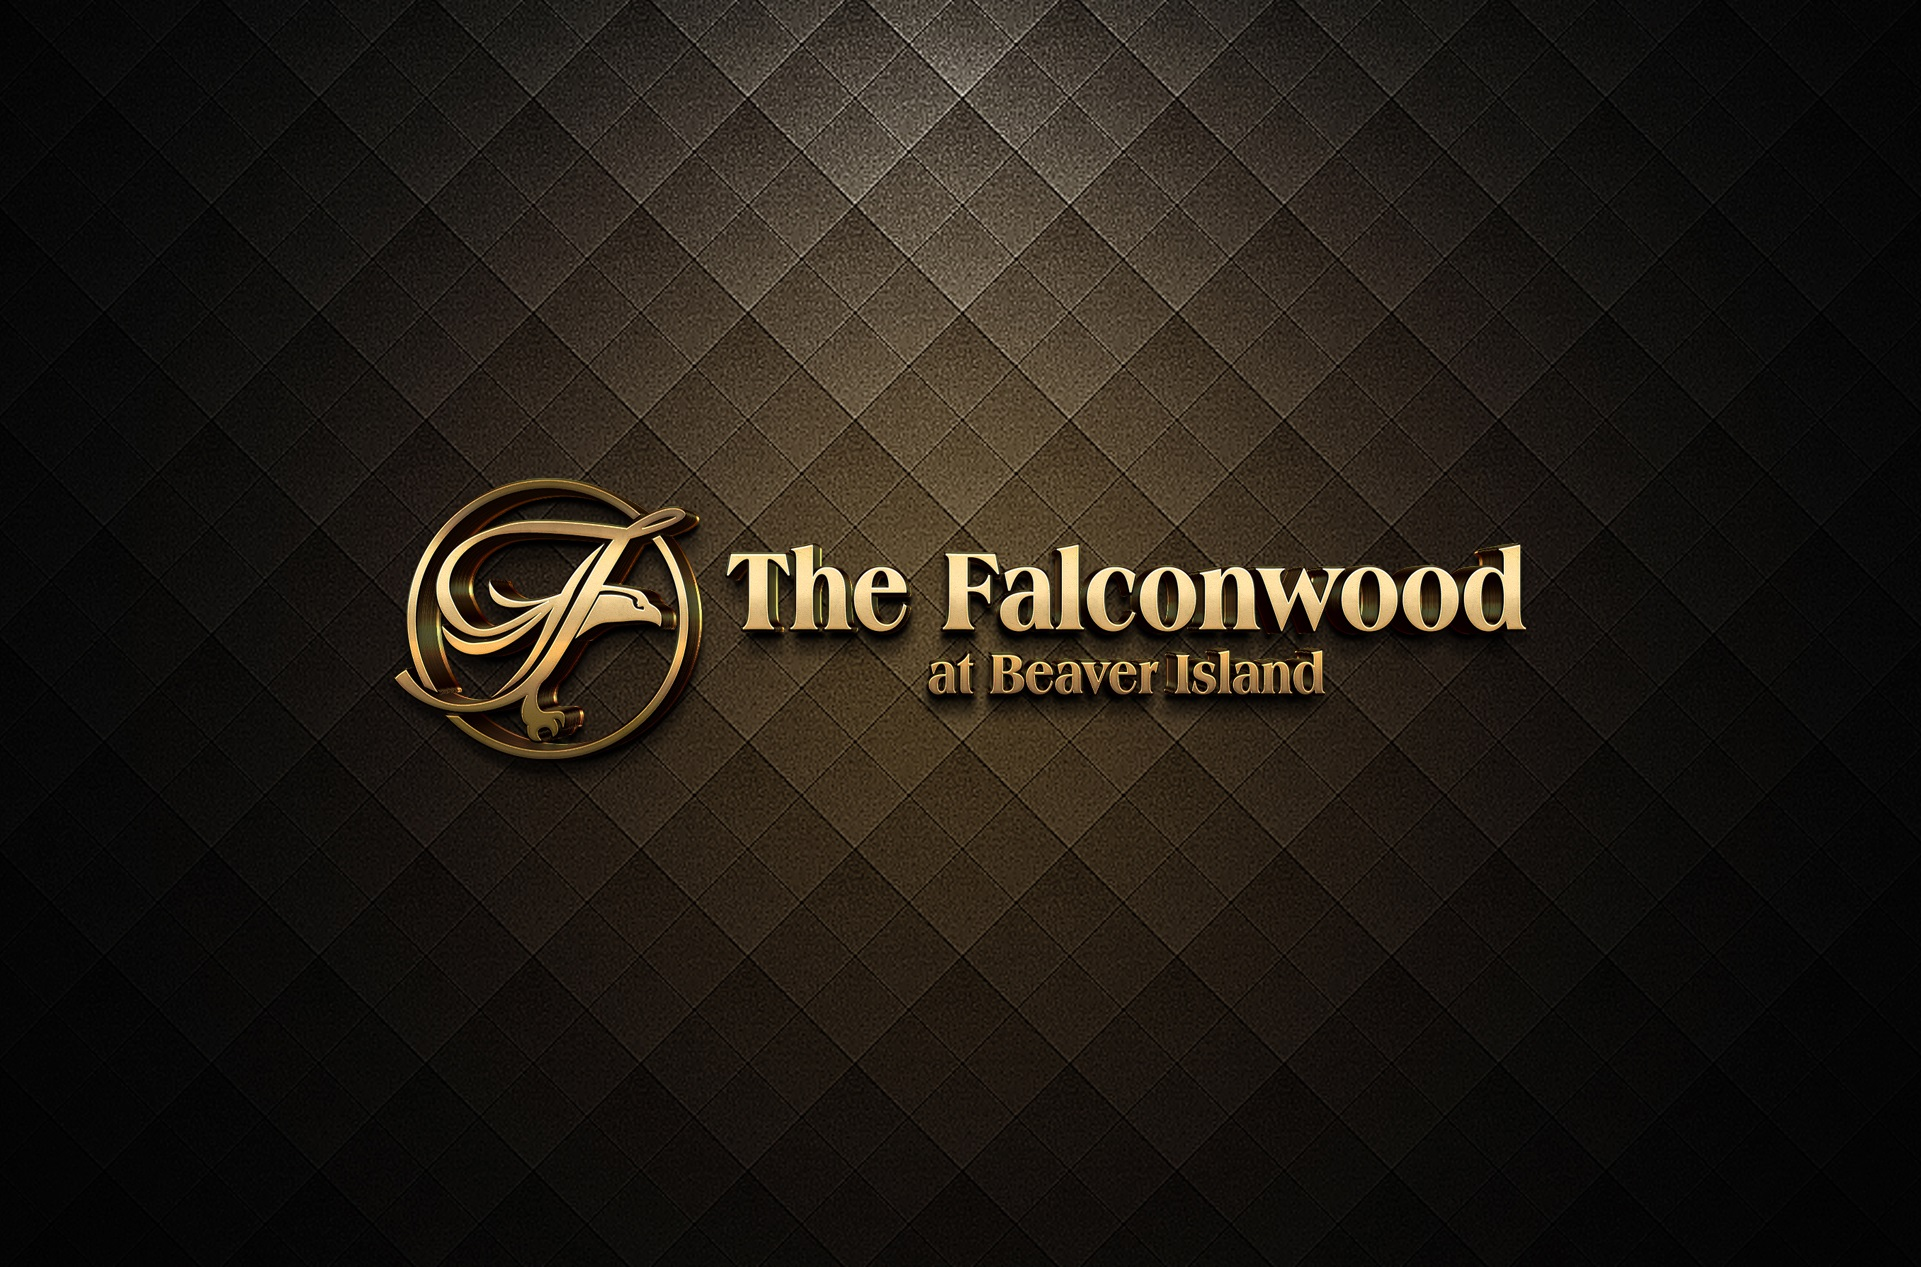 The Falconwood at Beaver Island State Park